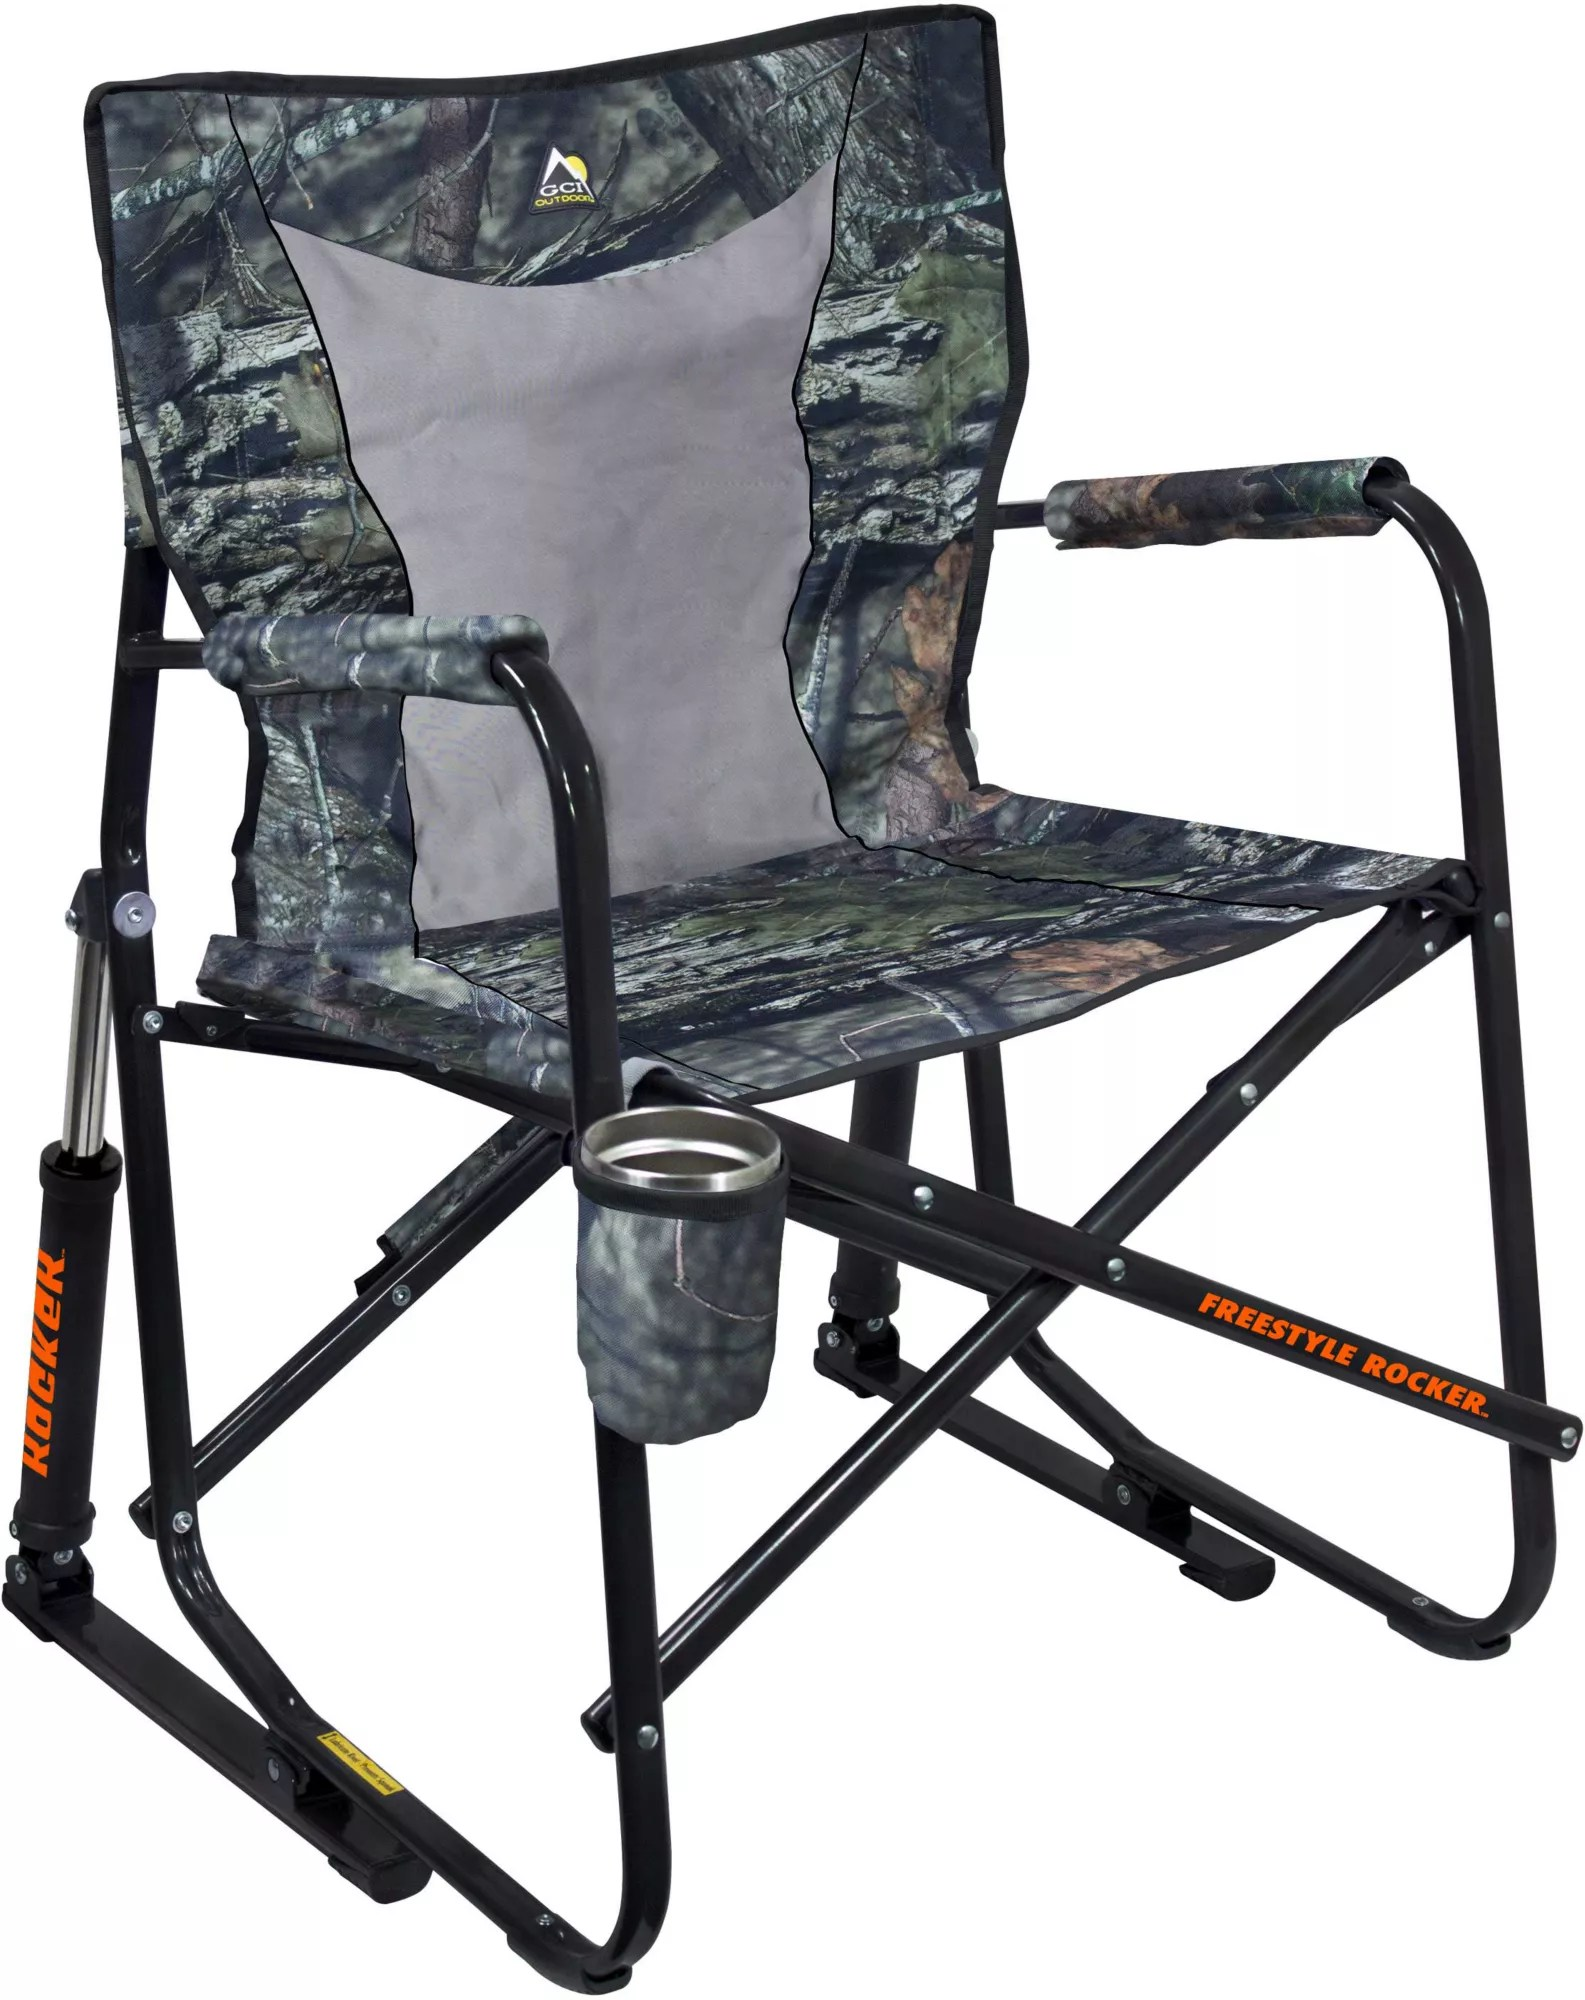 hunting seats and chairs bedside potty chair blind stools best price guarantee product image gci outdoor mossy oak freestyle rocker mesh